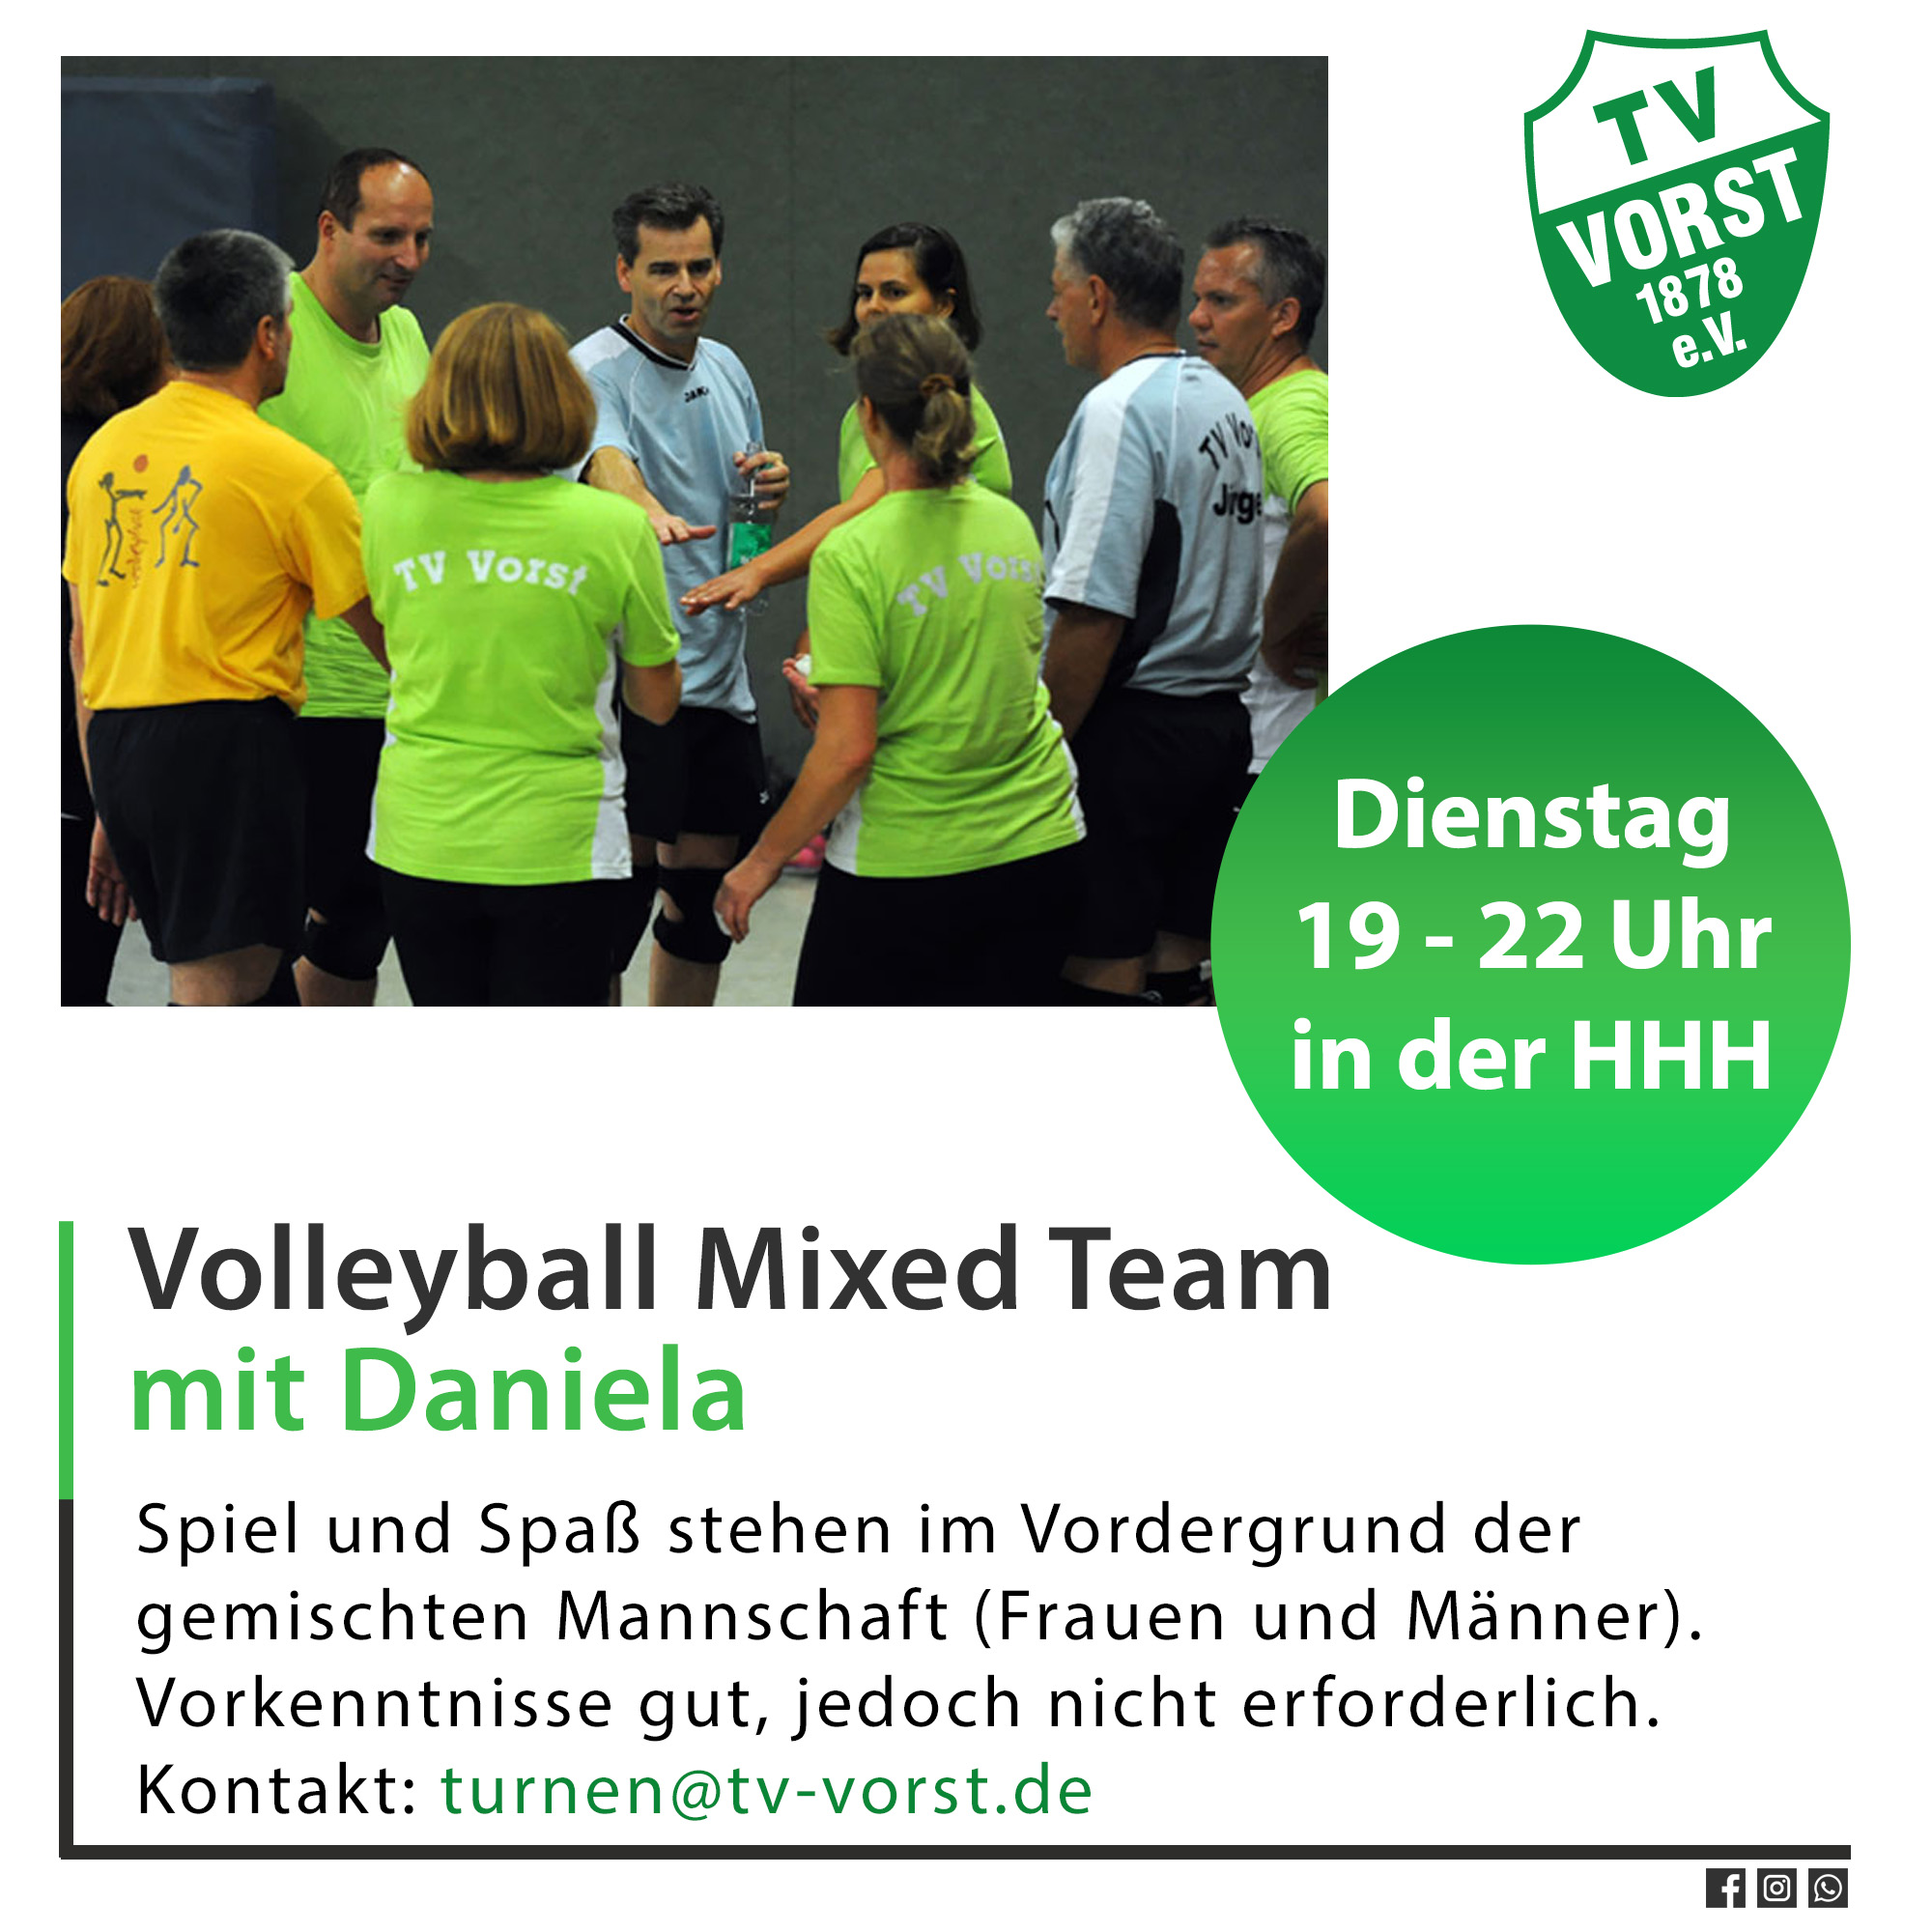 Volleyball Mixed Team TV Vorst